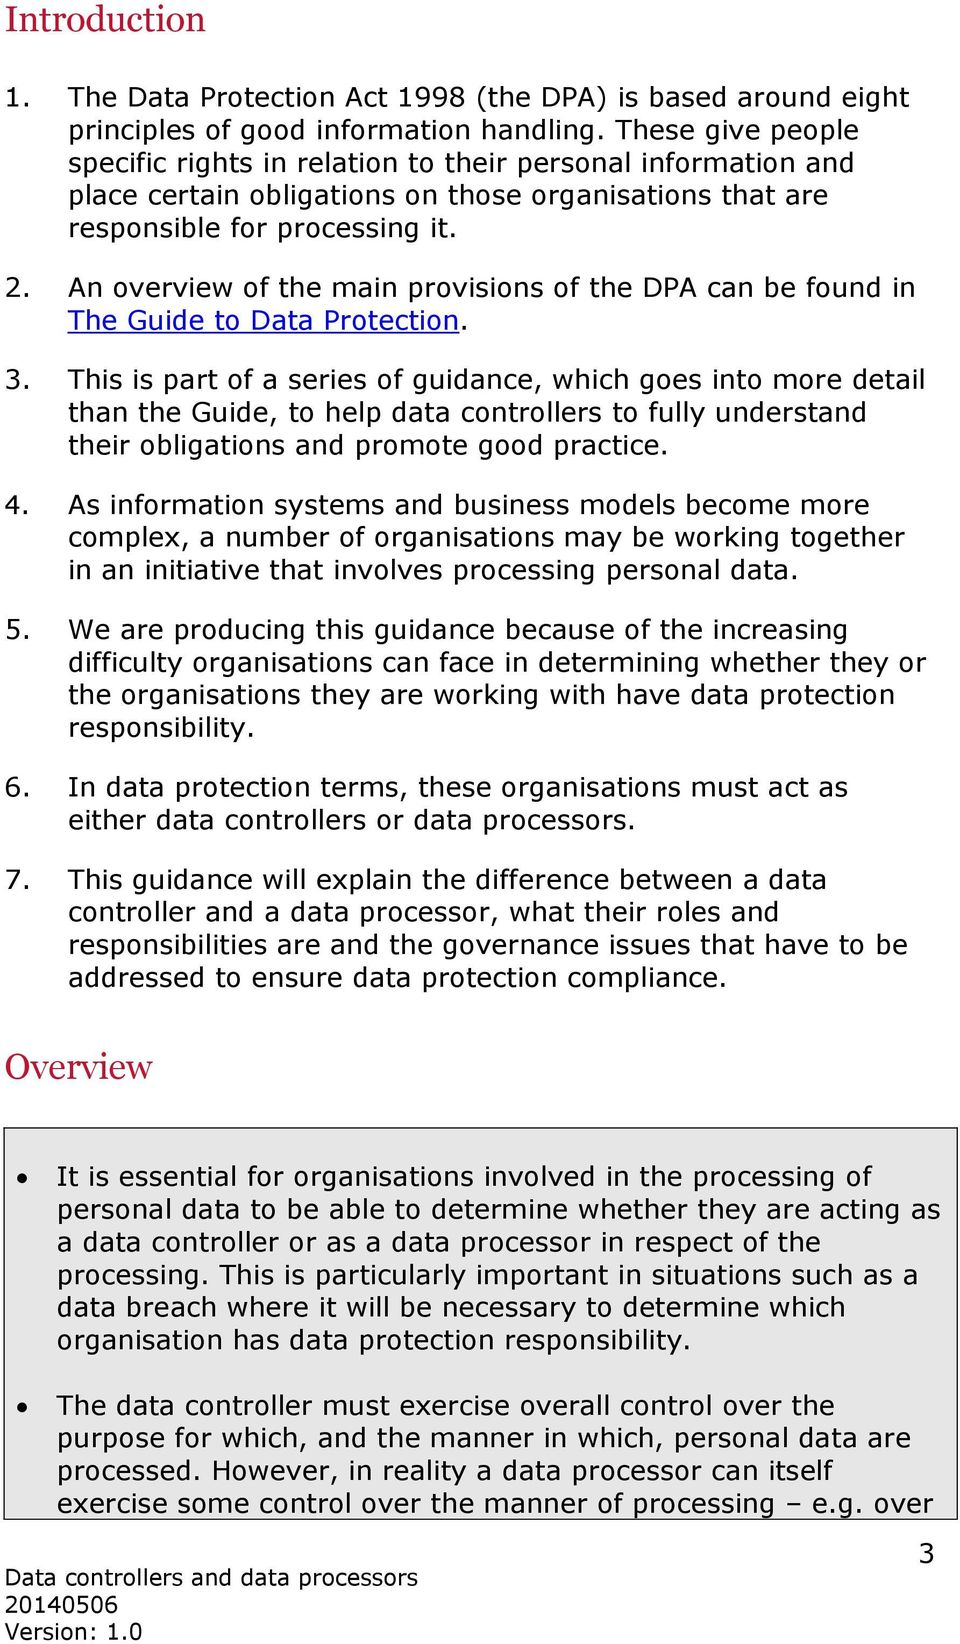 An overview of the main provisions of the DPA can be found in The Guide to Data Protection. 3.